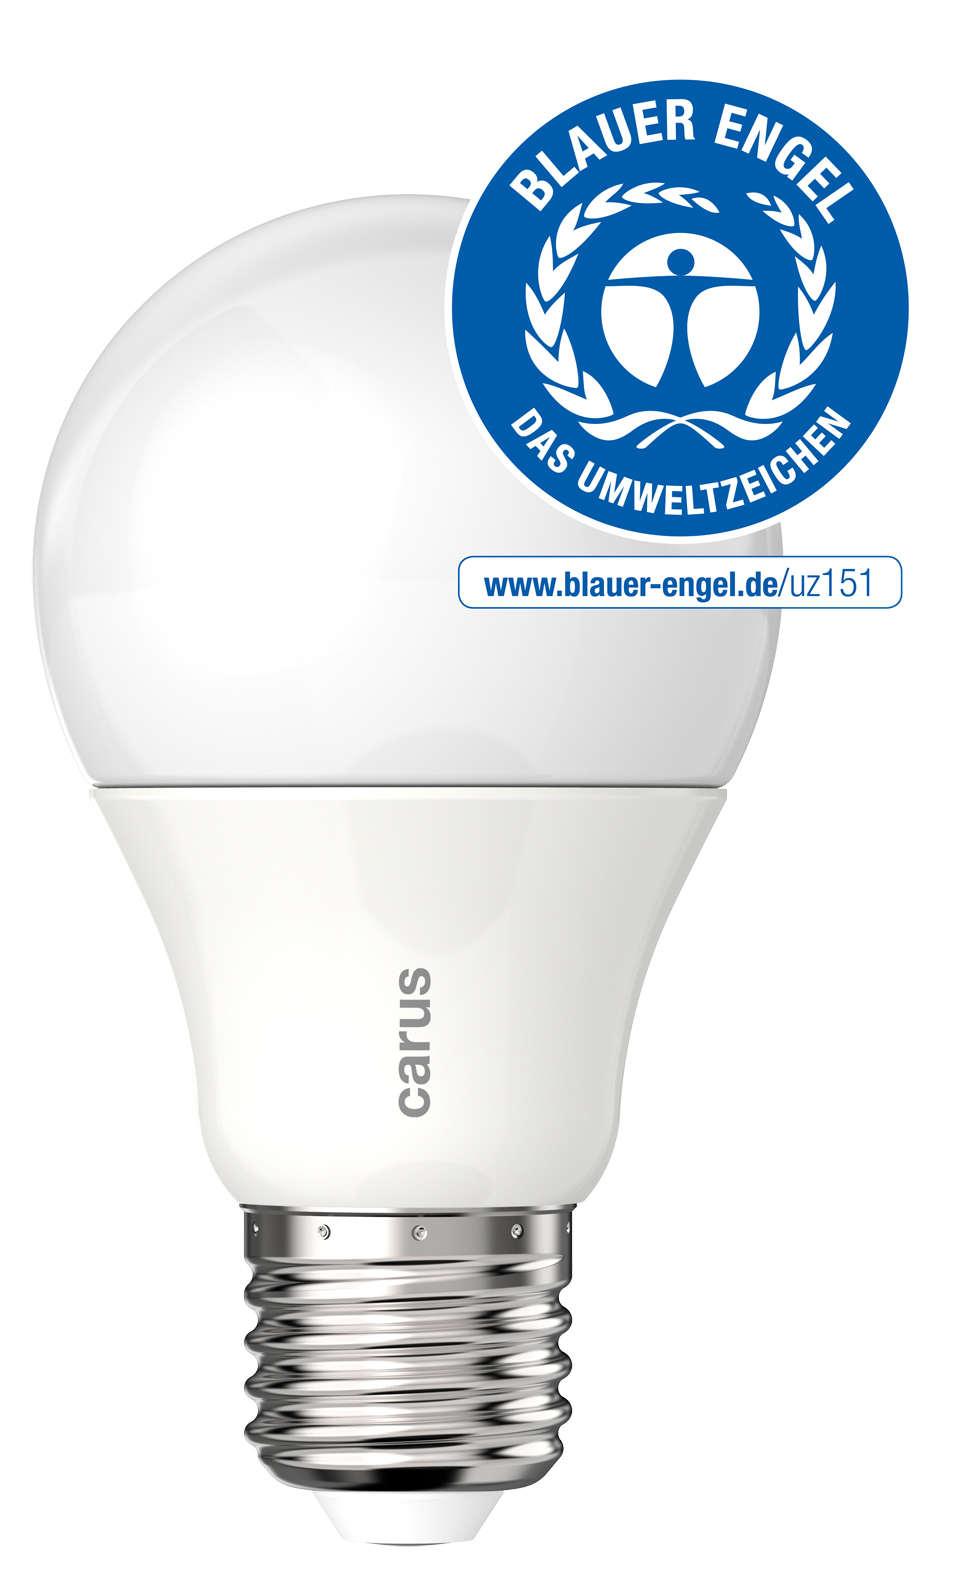 High quality LED bulb 600lm 2700K. Carus.